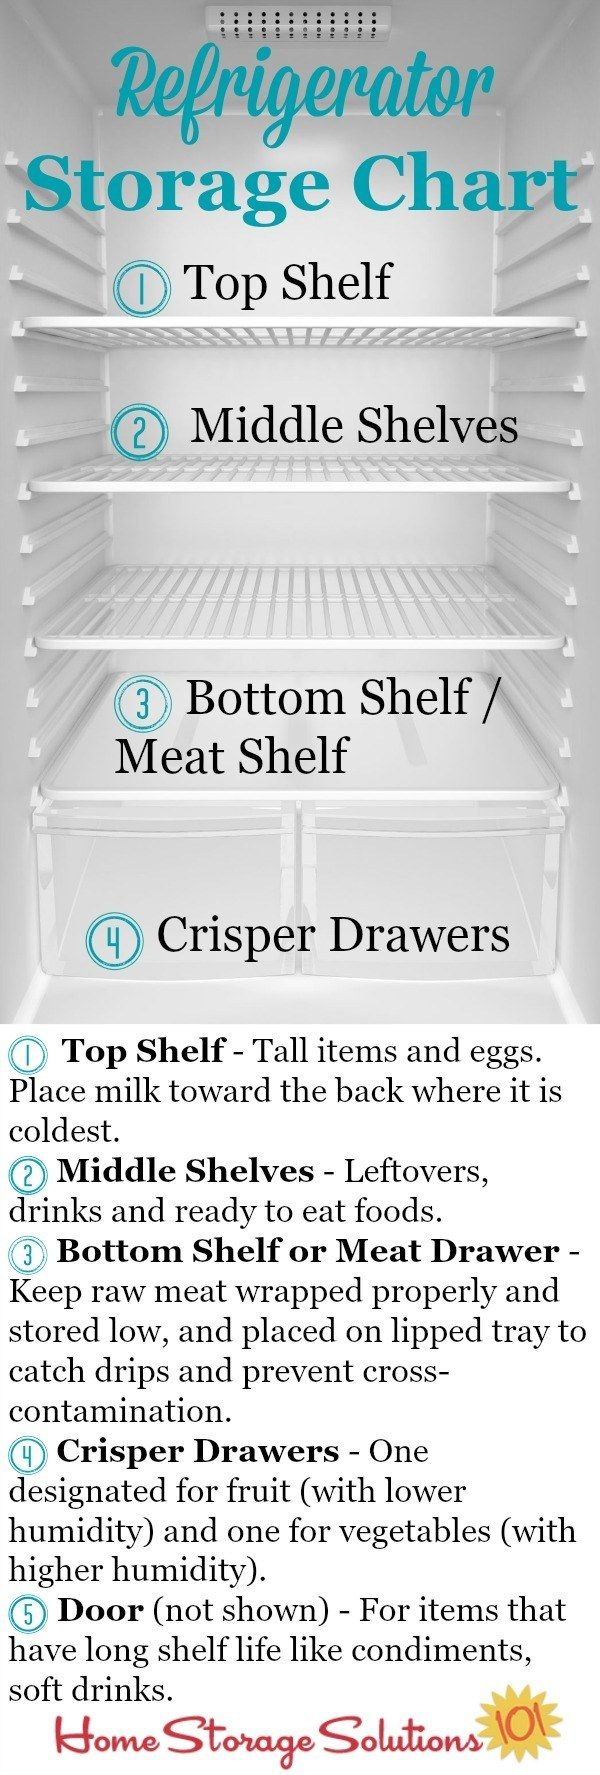 Store everything in your fridge according to which areas in your fridge are the coldest.